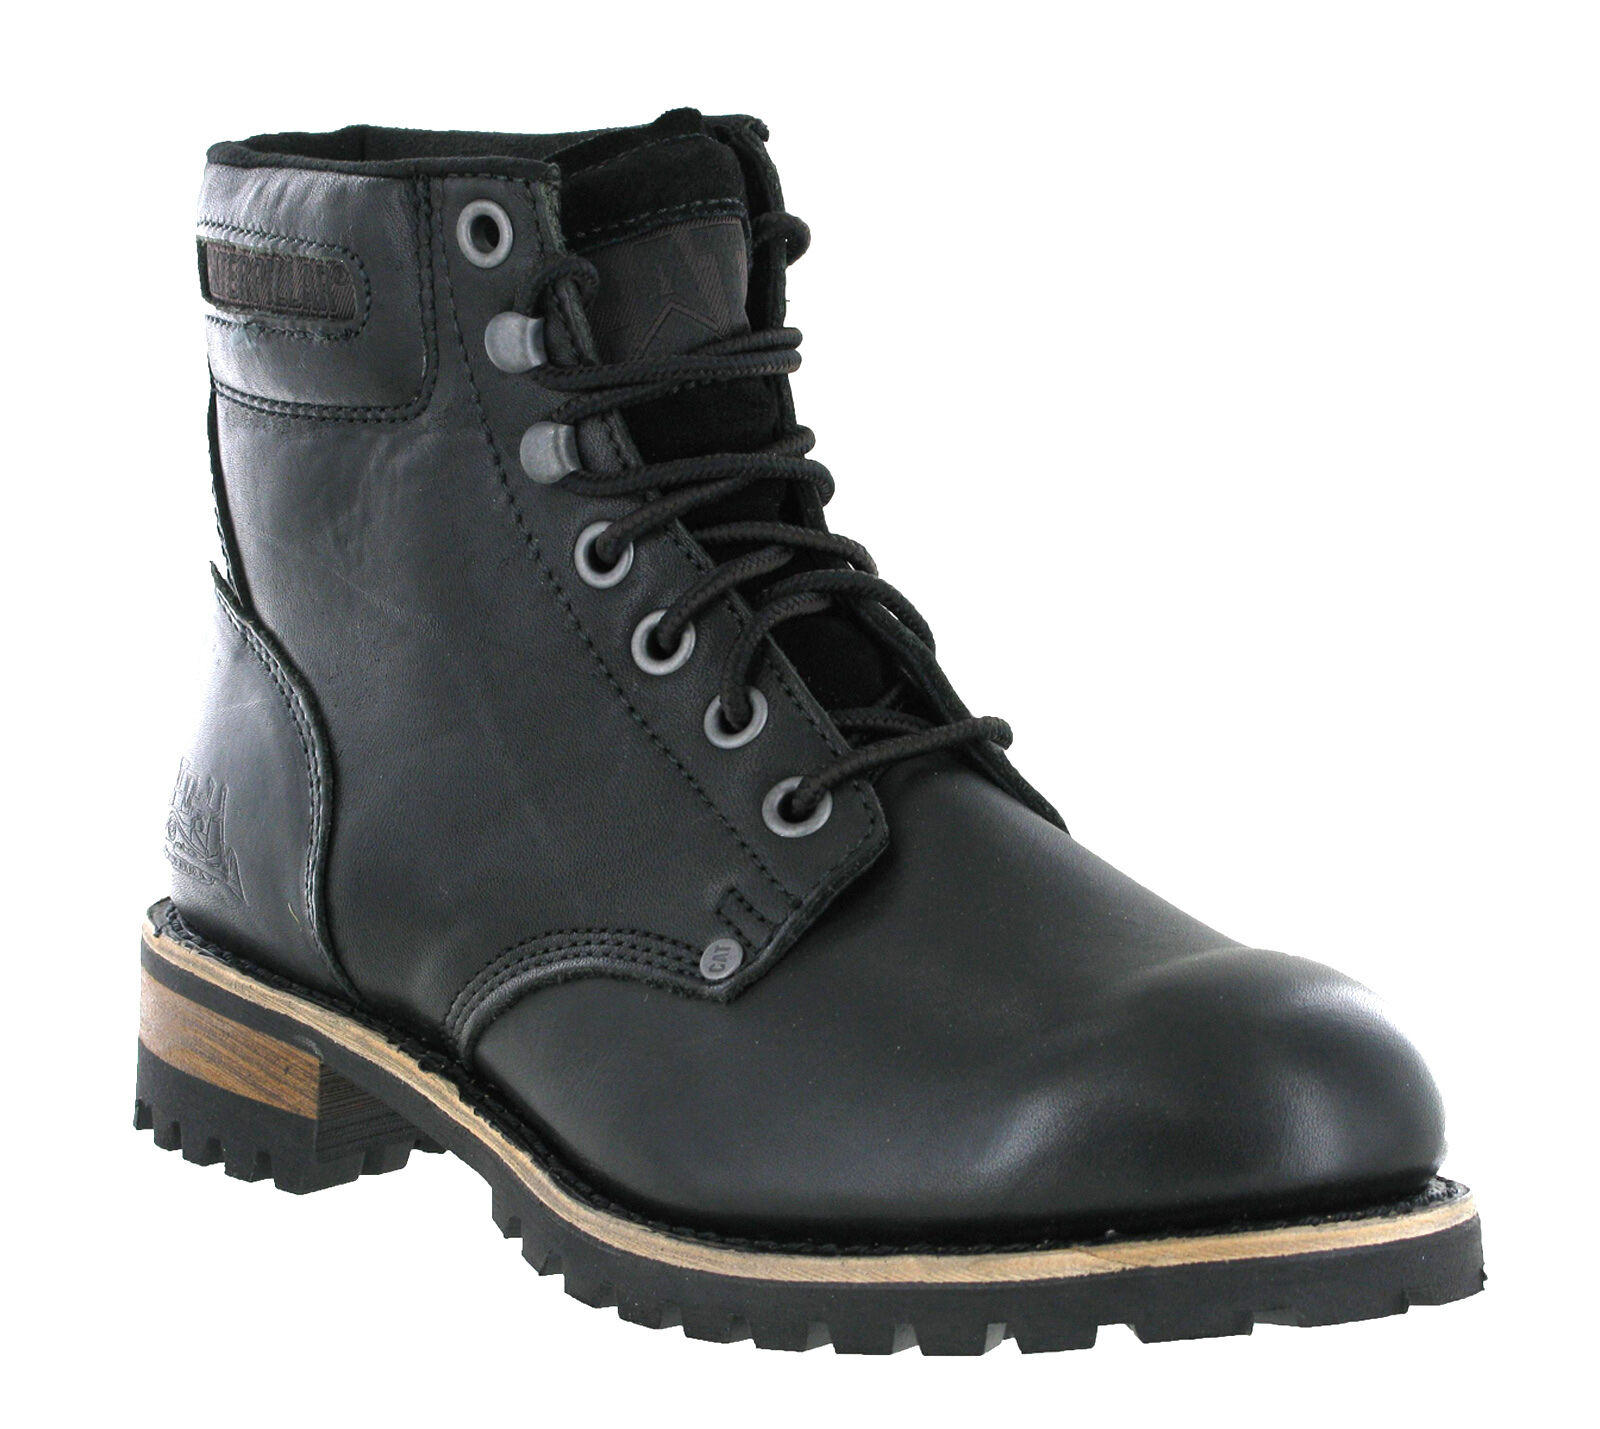 CAT Caterpillar Sequoia Non Safety Leather Mens Fashion Ankle Boots UK6-13